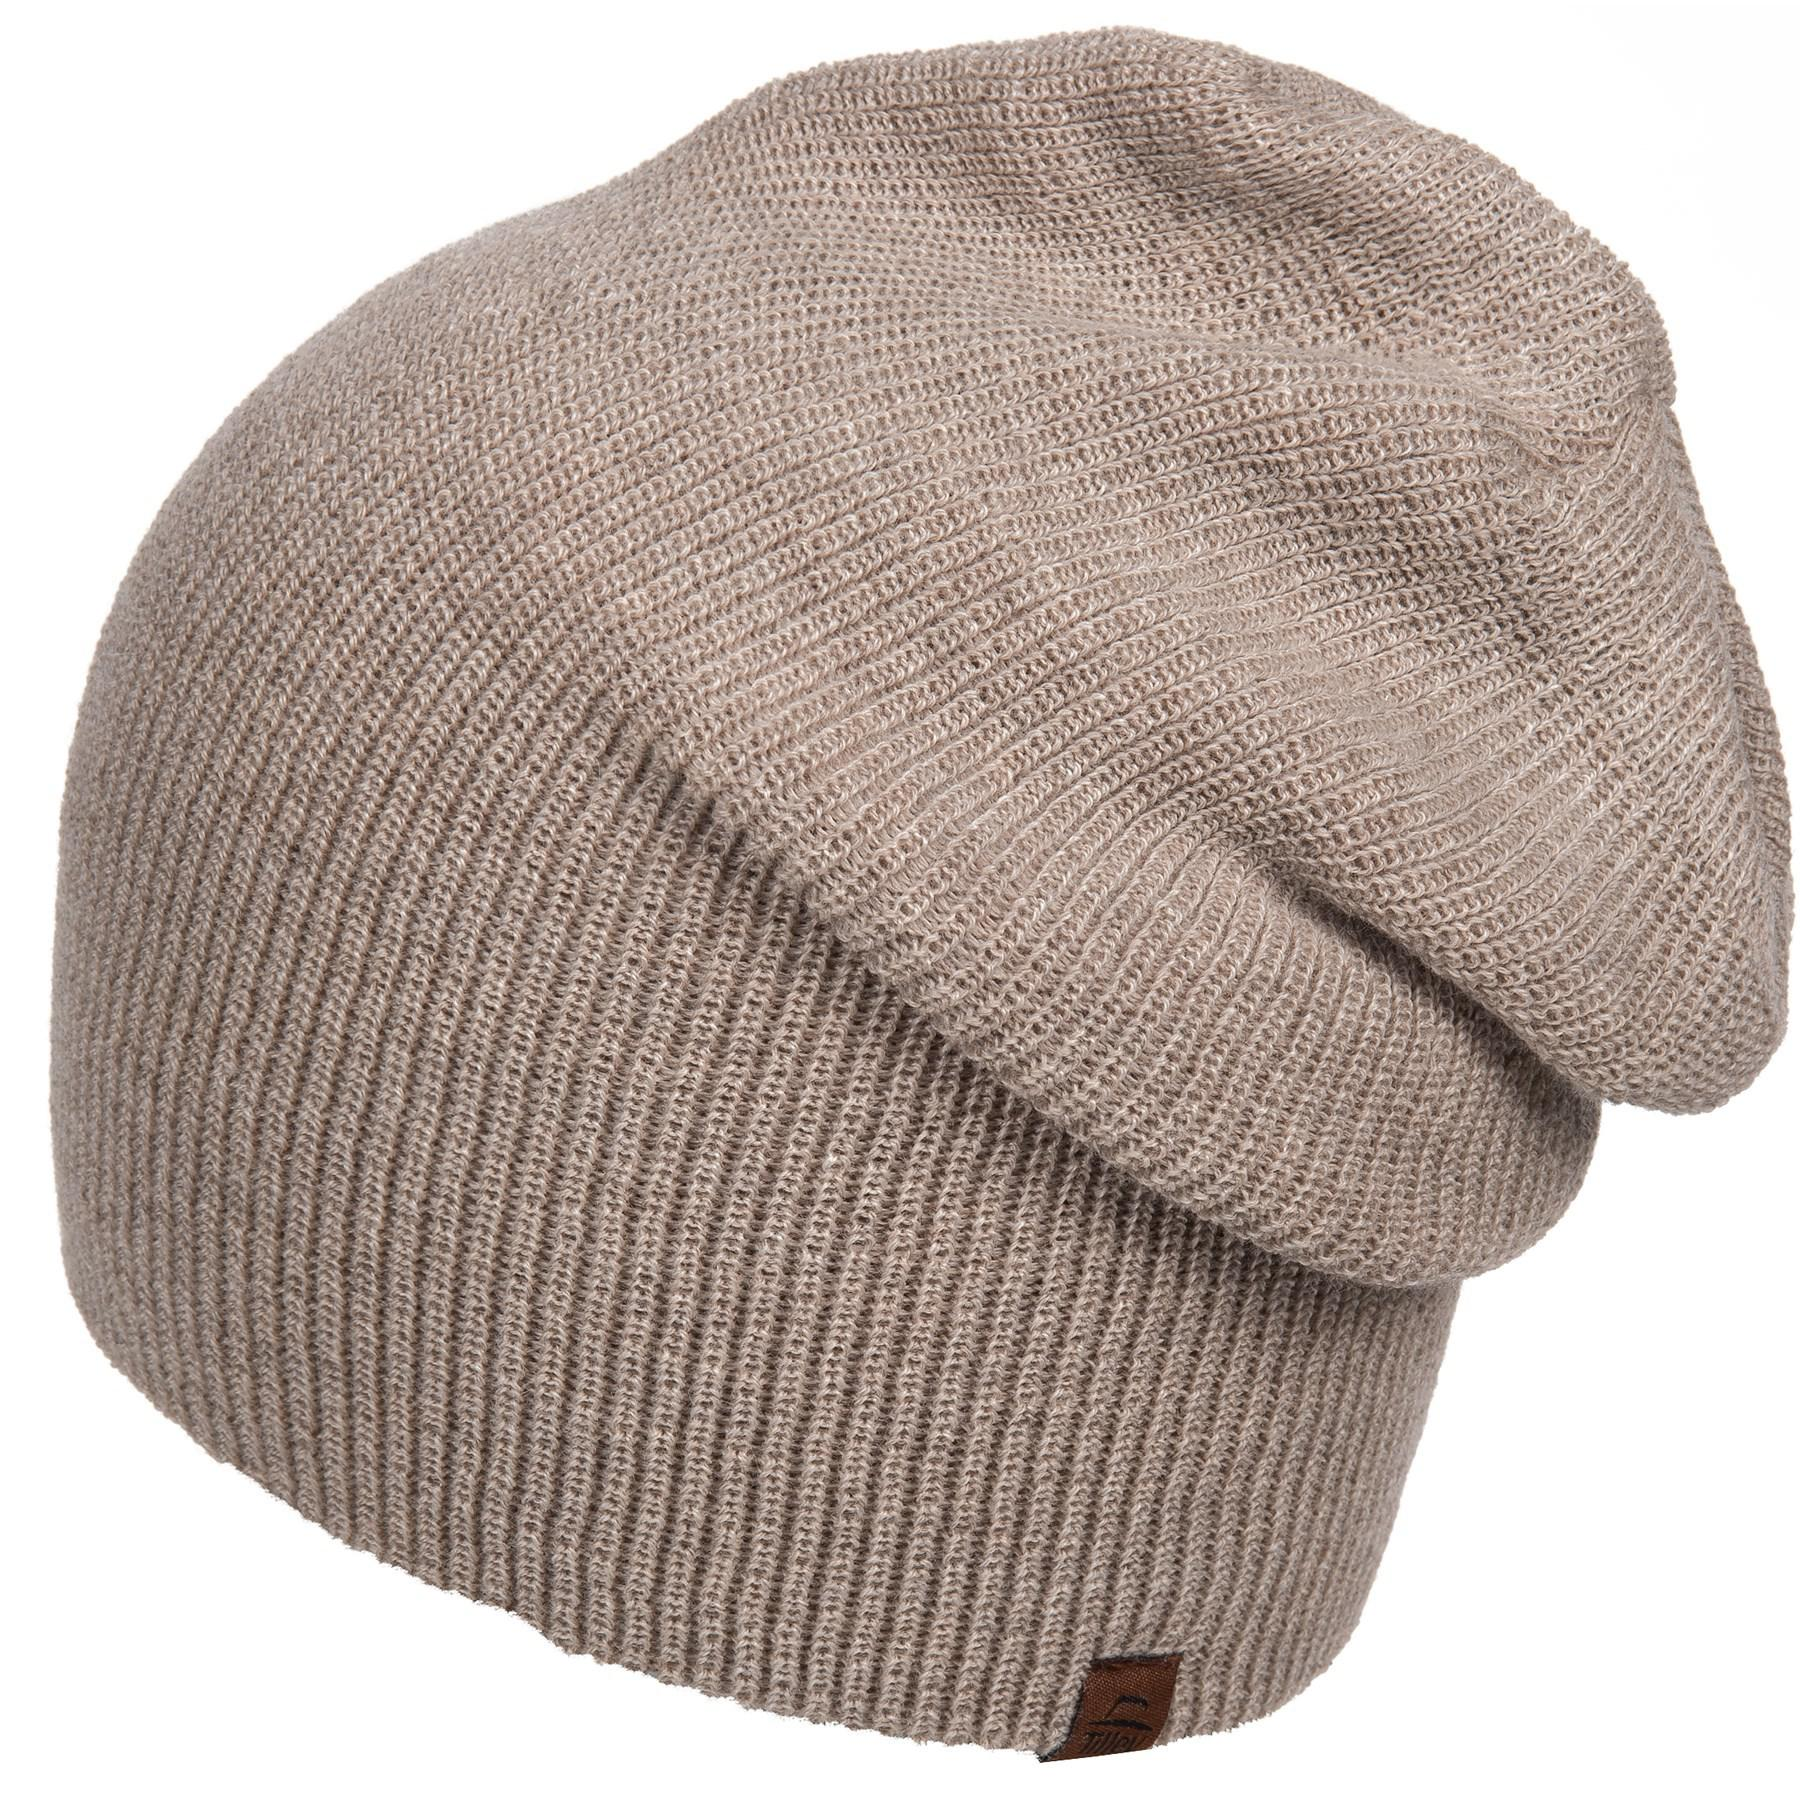 2a0a65b003204 Tilley Merino Wool Toque Hat (for Women) - Lyst